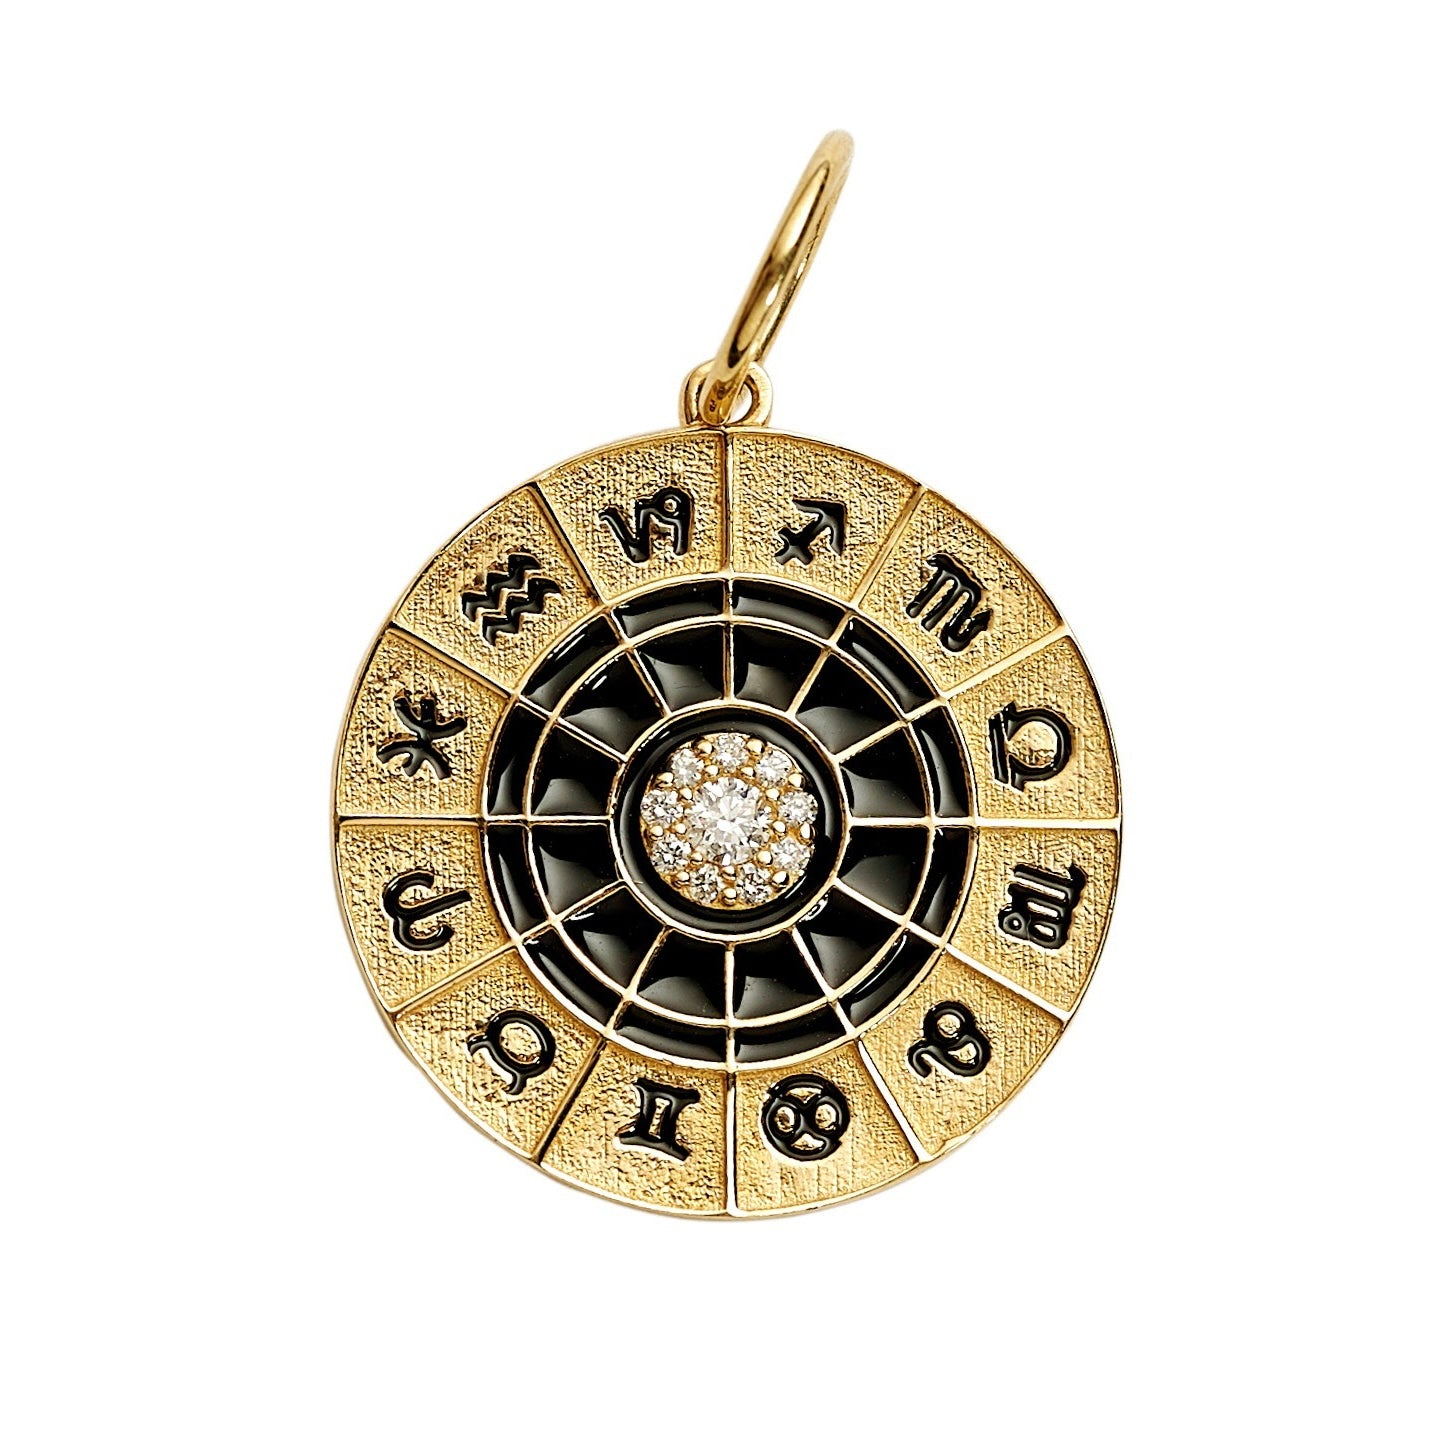 Gold Black Enamel And Diamond Astrological Charm